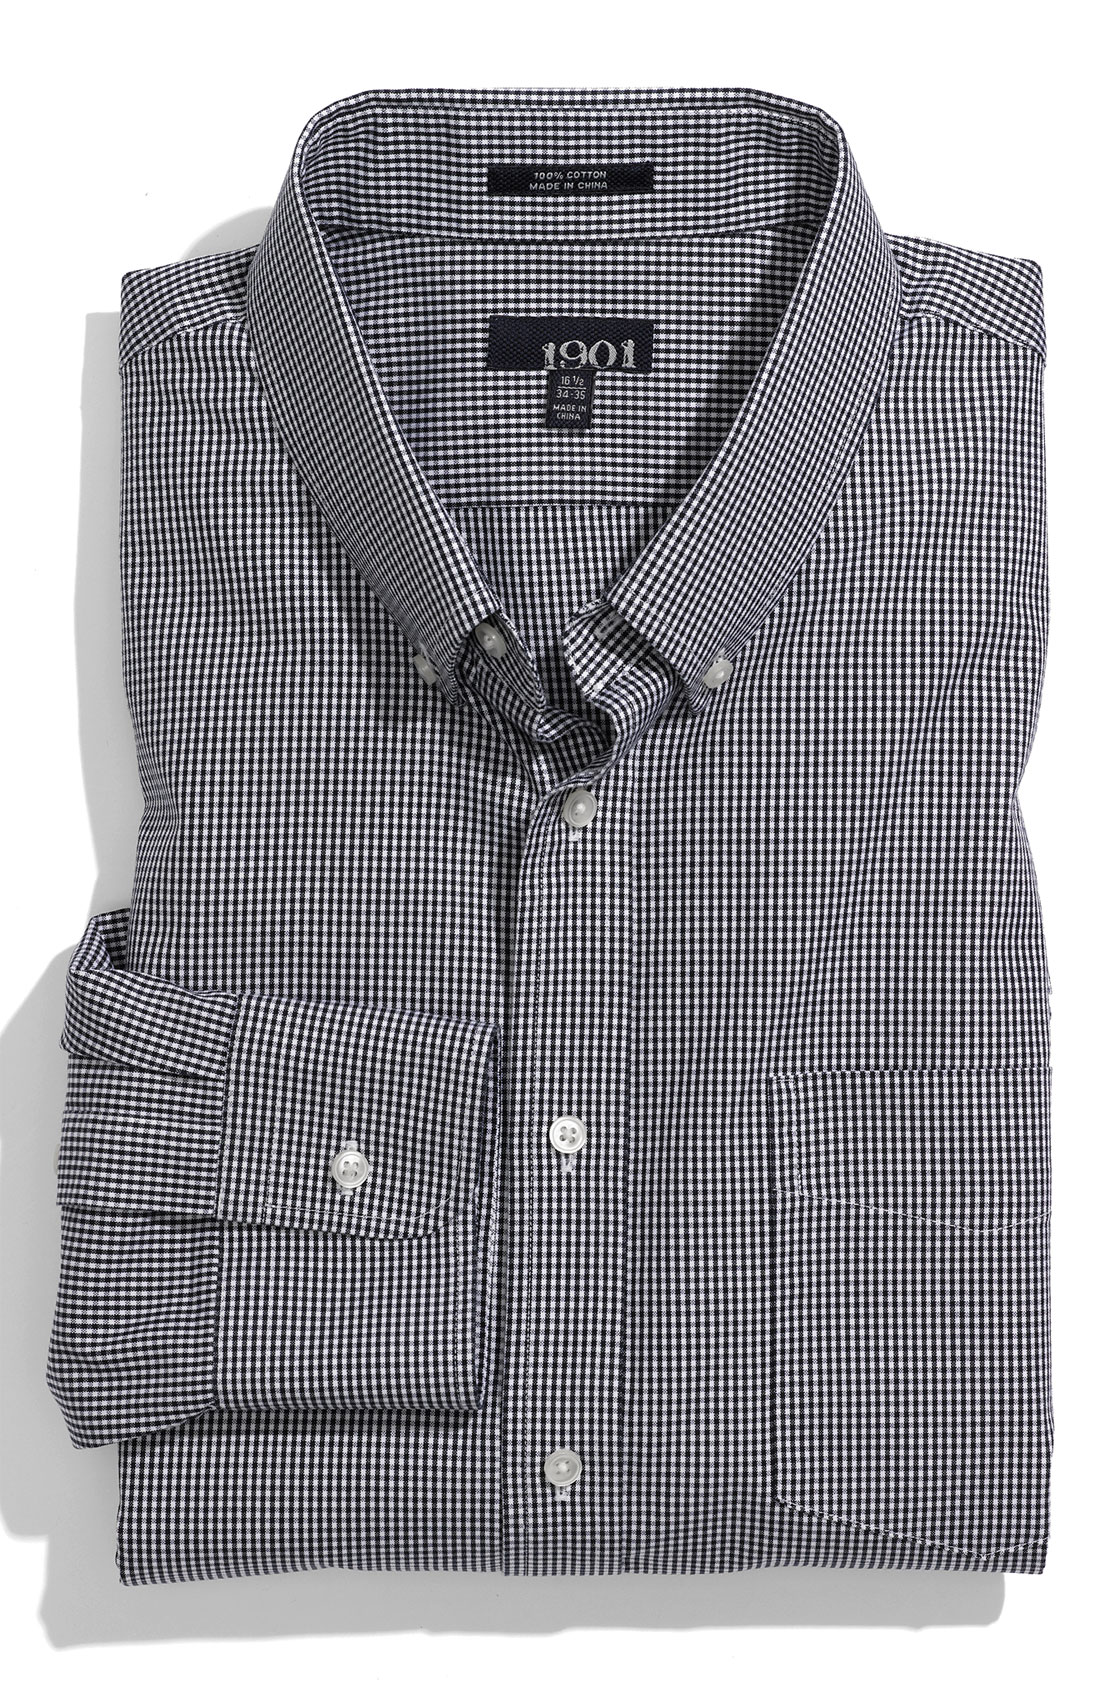 1901 trim fit dress shirt in blue for men navy gingham for Navy blue checkered dress shirt